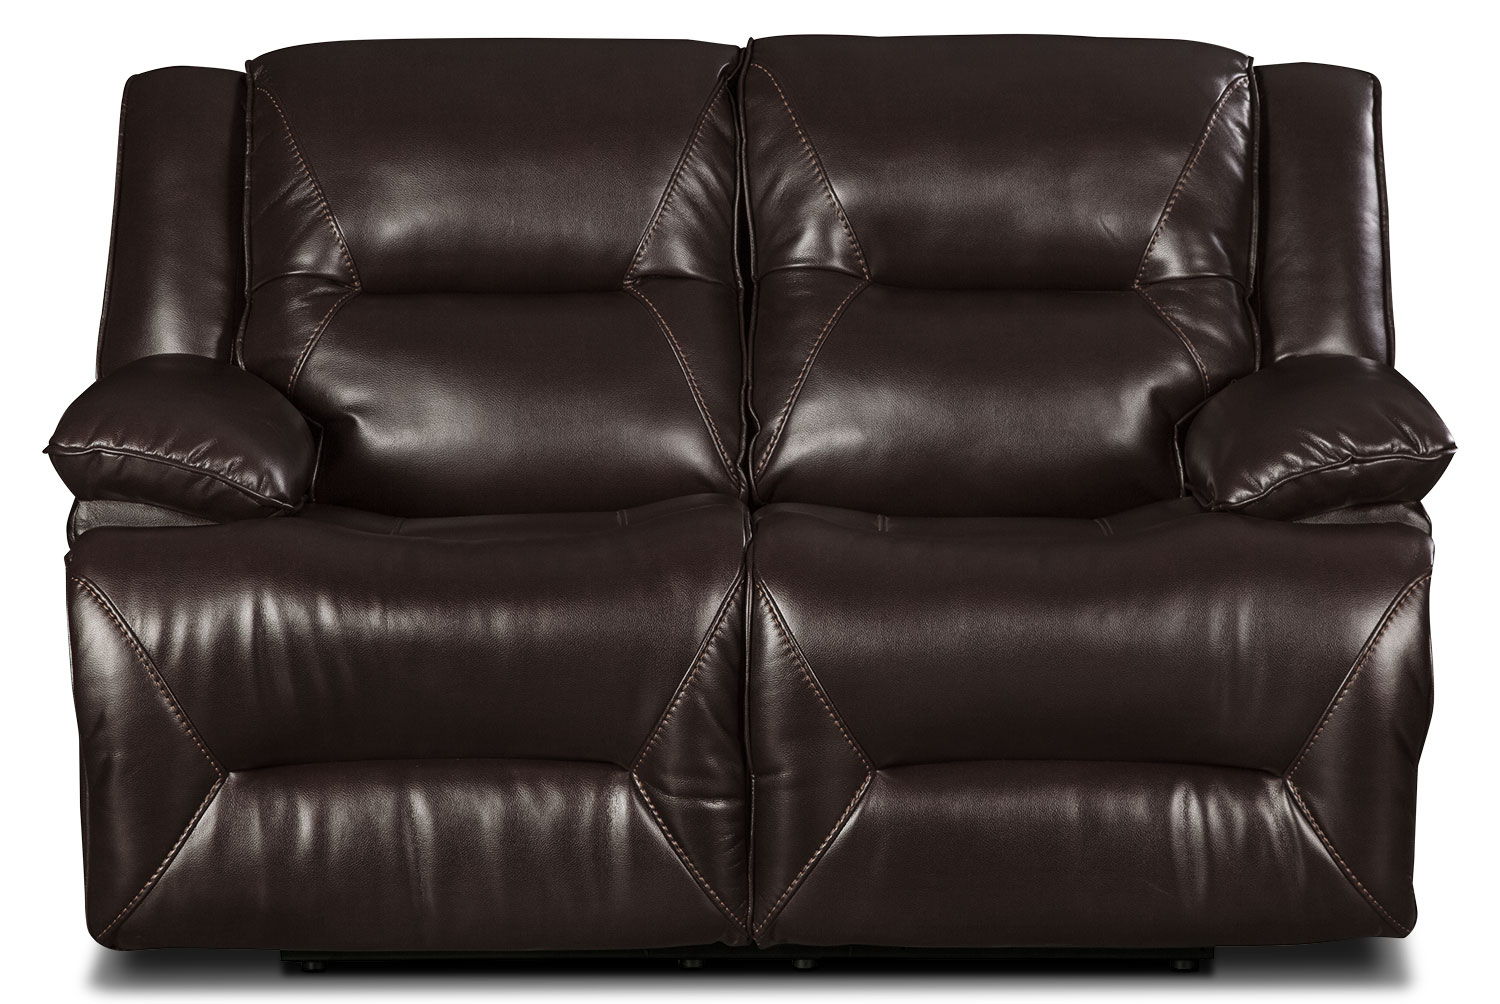 Lancer Leather-Look Fabric Power Reclining Loveseat – Brown